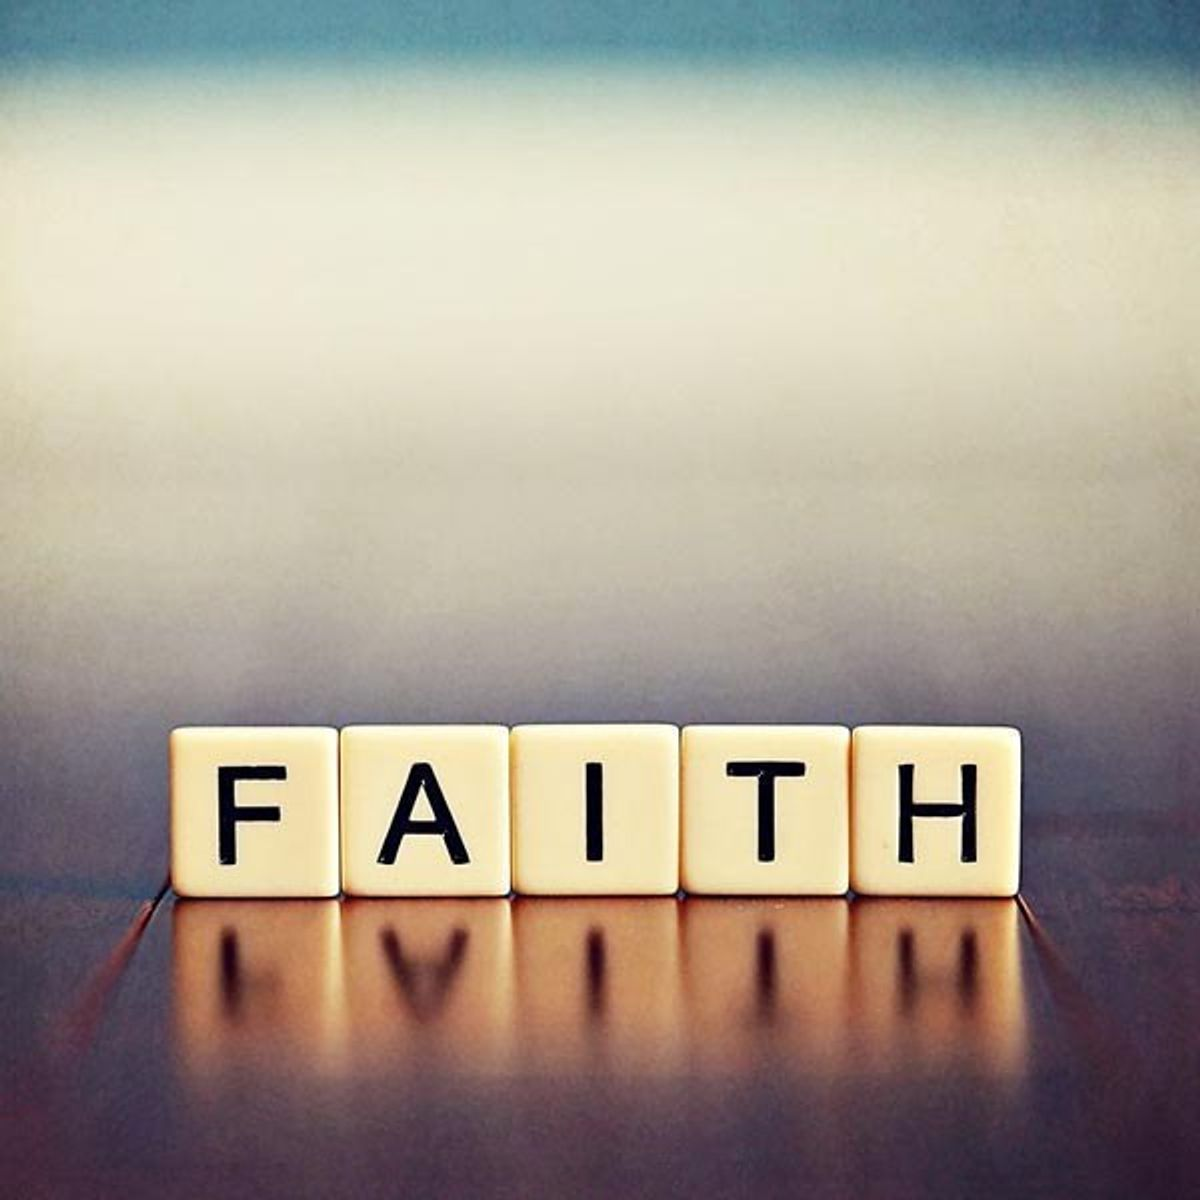 11 Reasons Why Faith Is Important